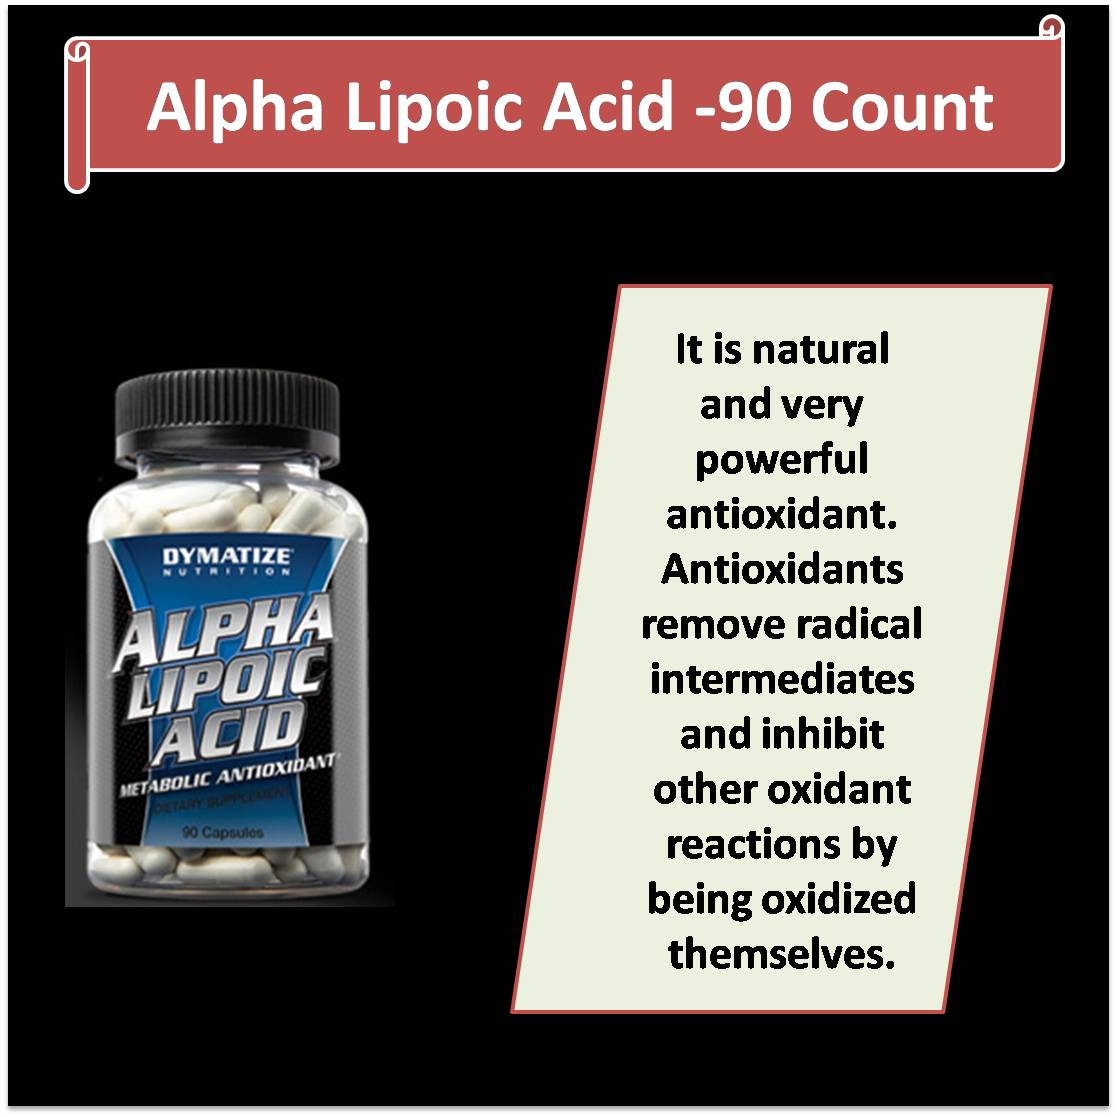 Alpha Lipoic Acid -90 Count